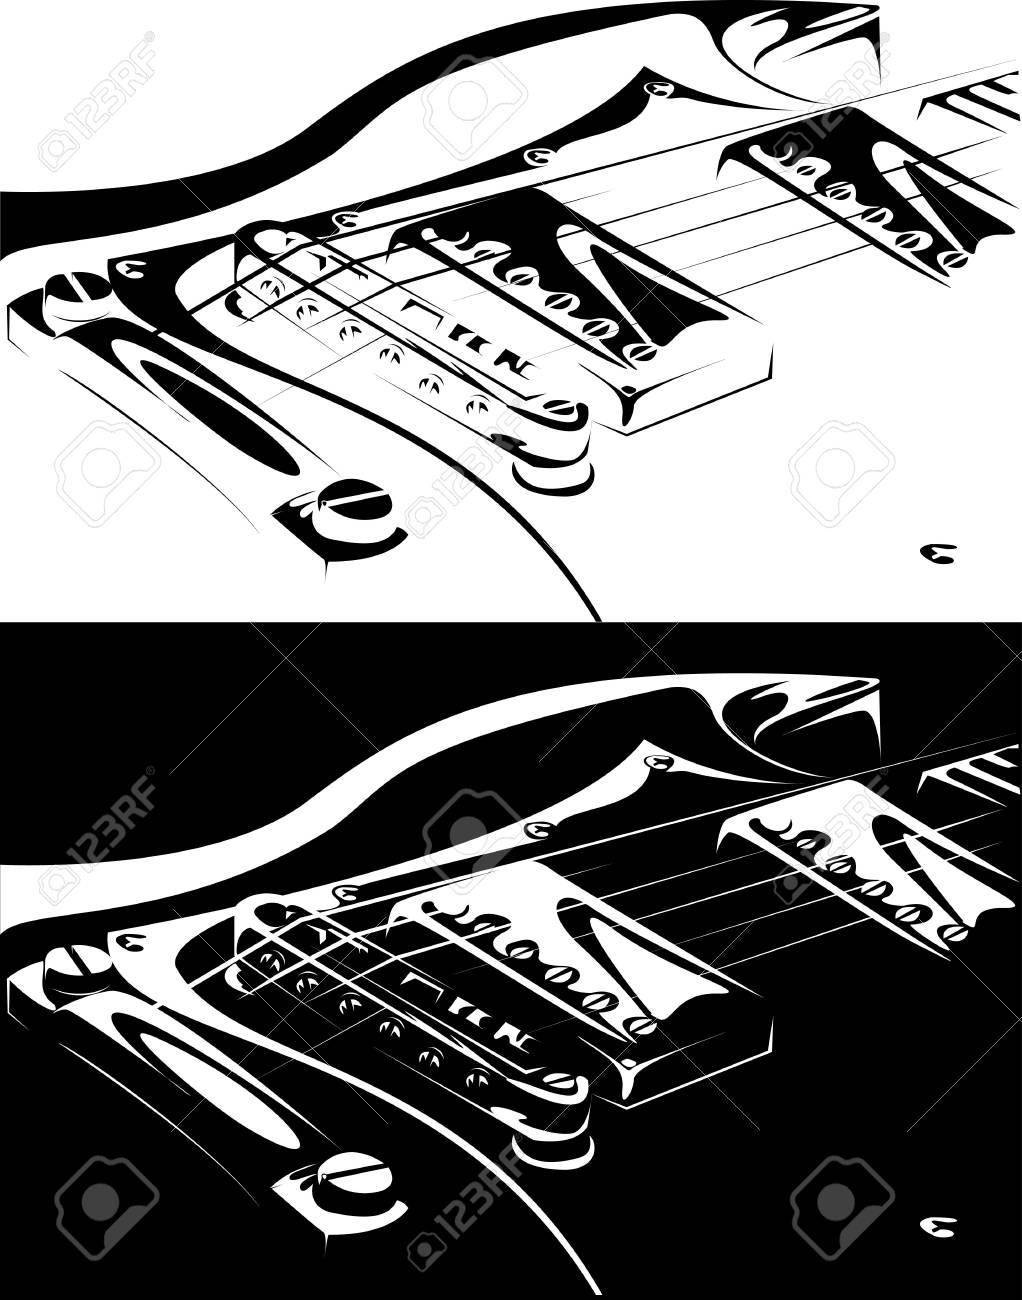 series. Electric guitar black-white version Stock Photo - 6586201